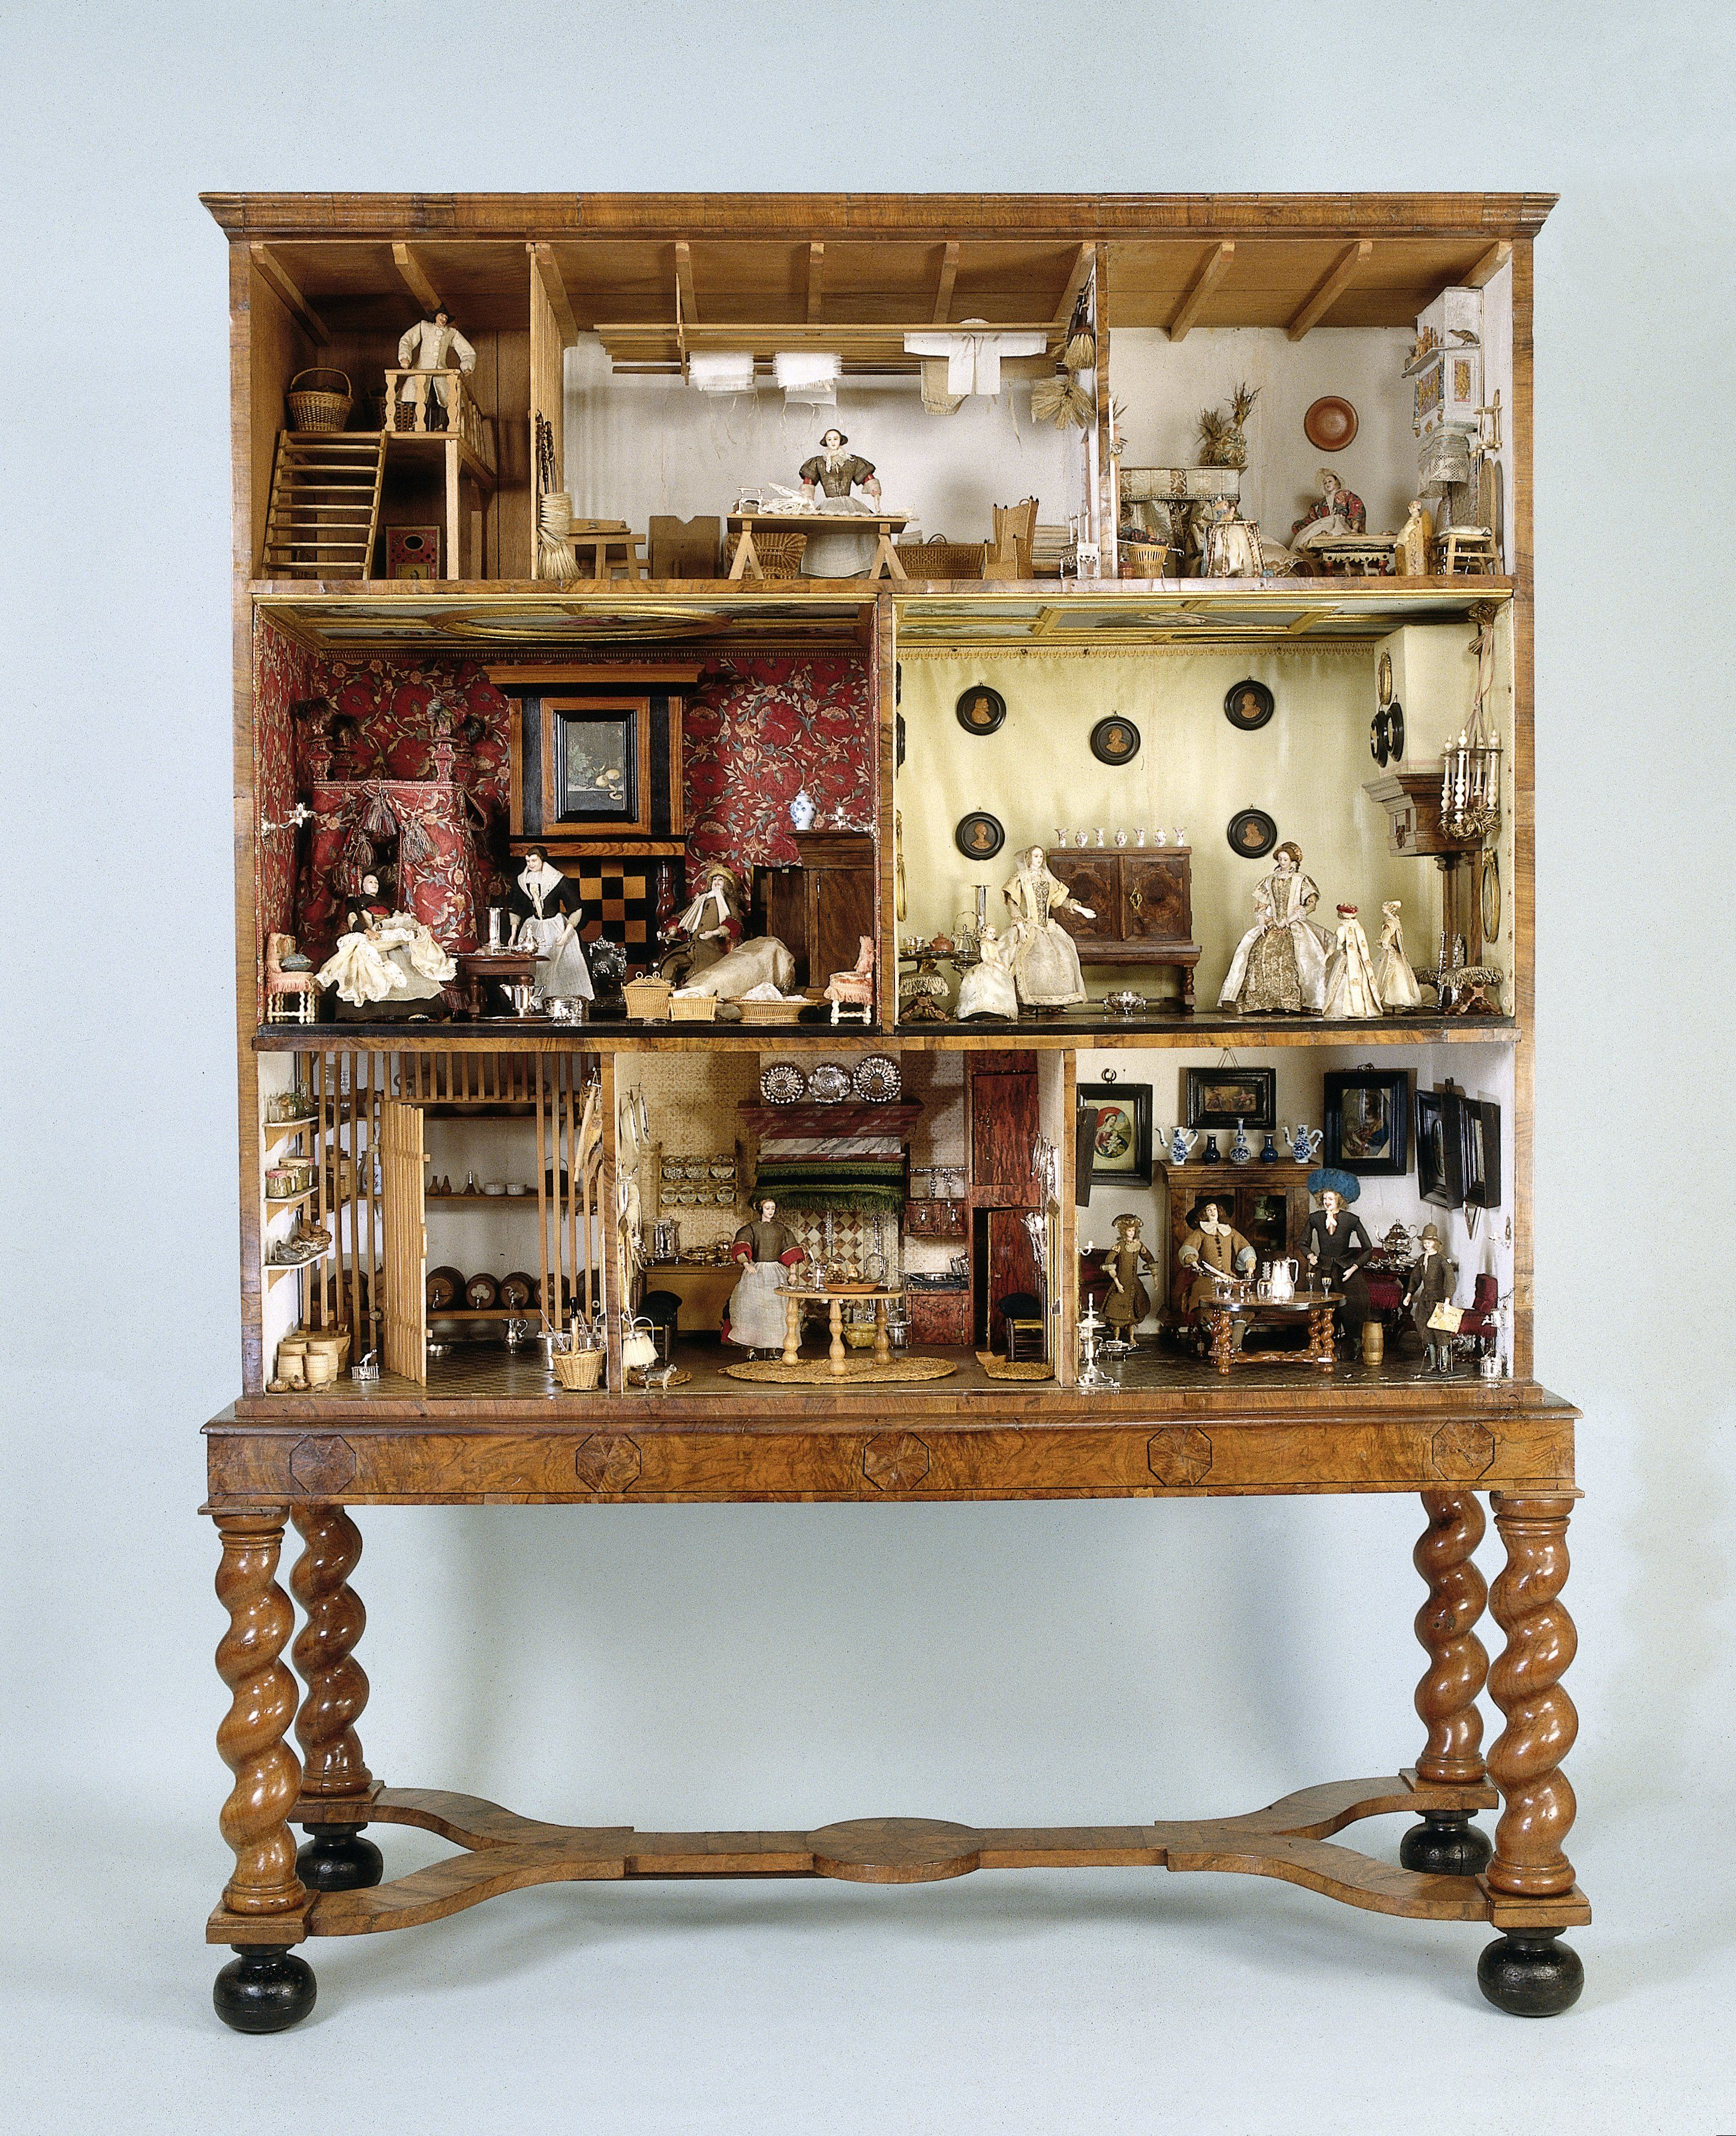 Dollhouse of Petronella Dunois, c. 1676, Rijksmuseum Amsterdam, gift of Mrs. A.S.M. van Tienhoven-Hacke